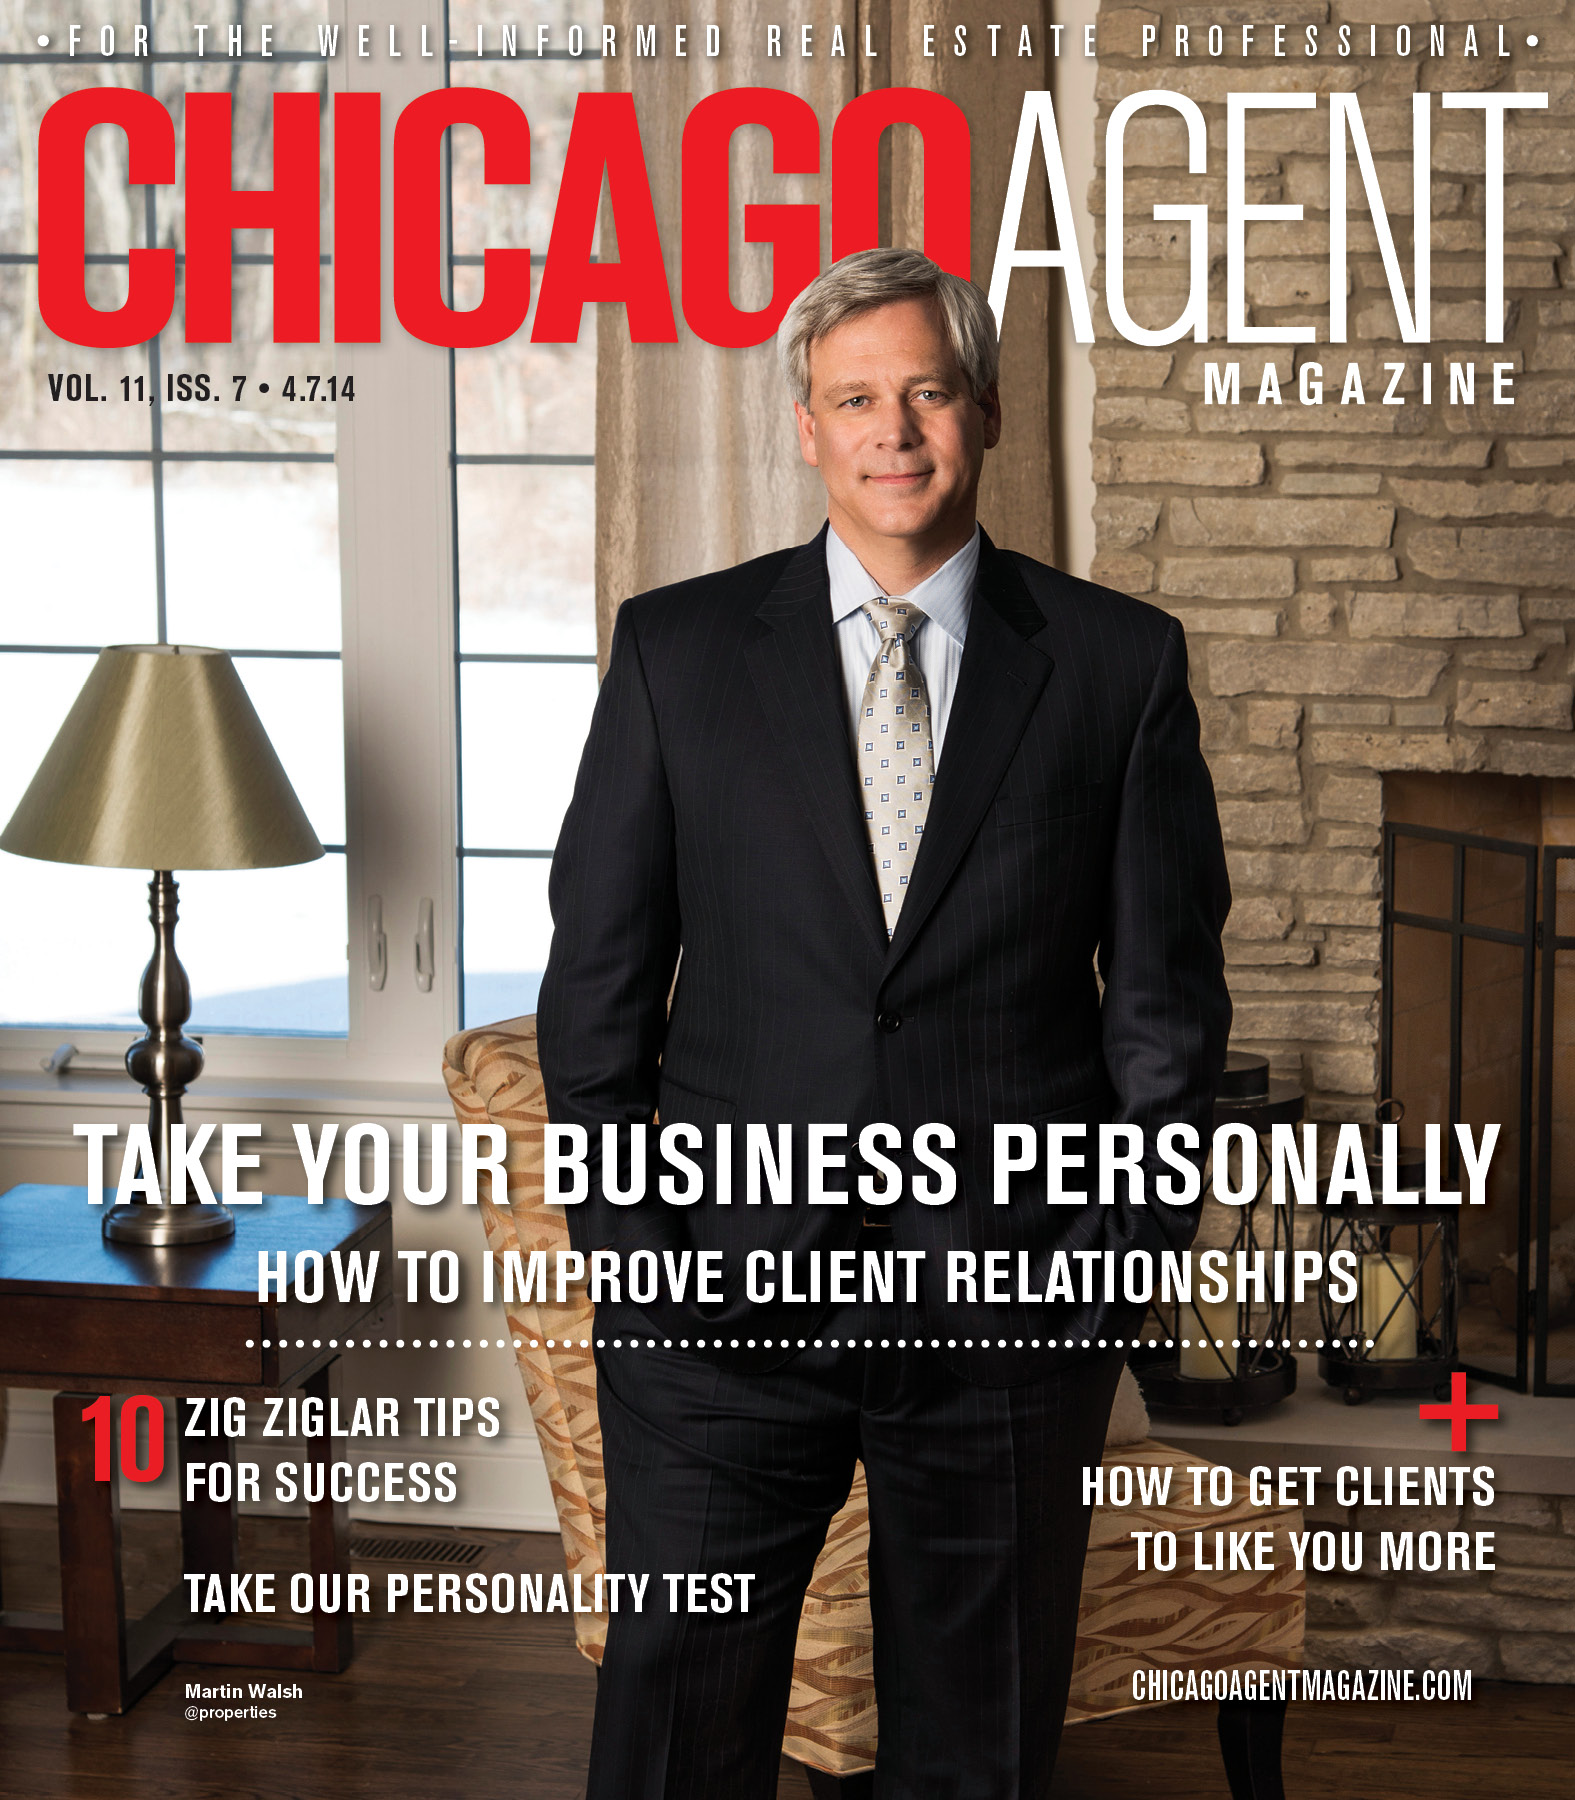 Take Your Business Personally: How to Improve Client Relationships - 4.7.14